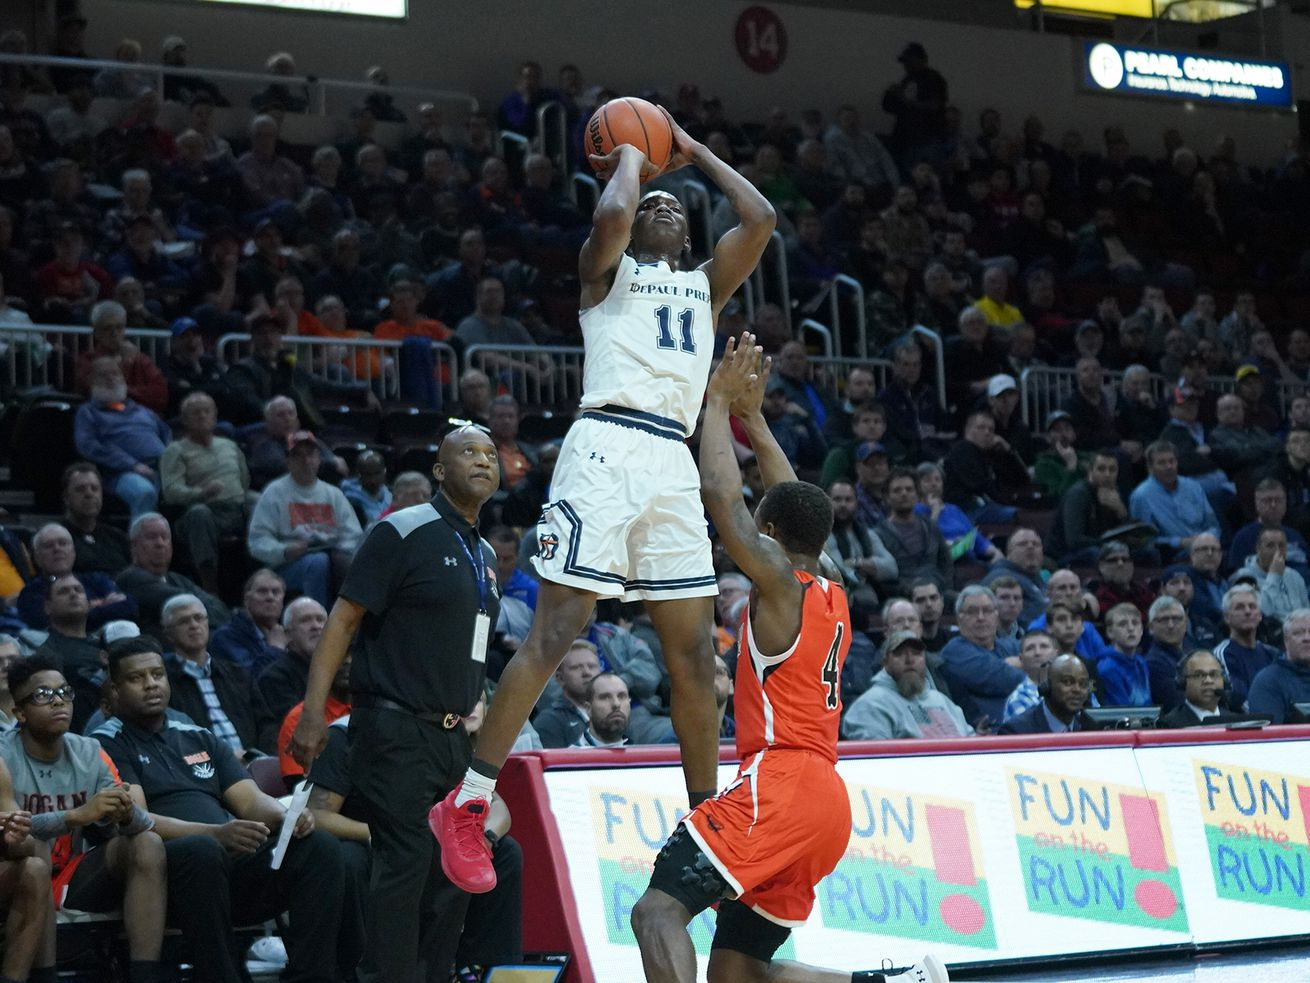 DePaul Prep's Perry Cowan (11) pulls up a three pointer against Bogan at state in 2019.